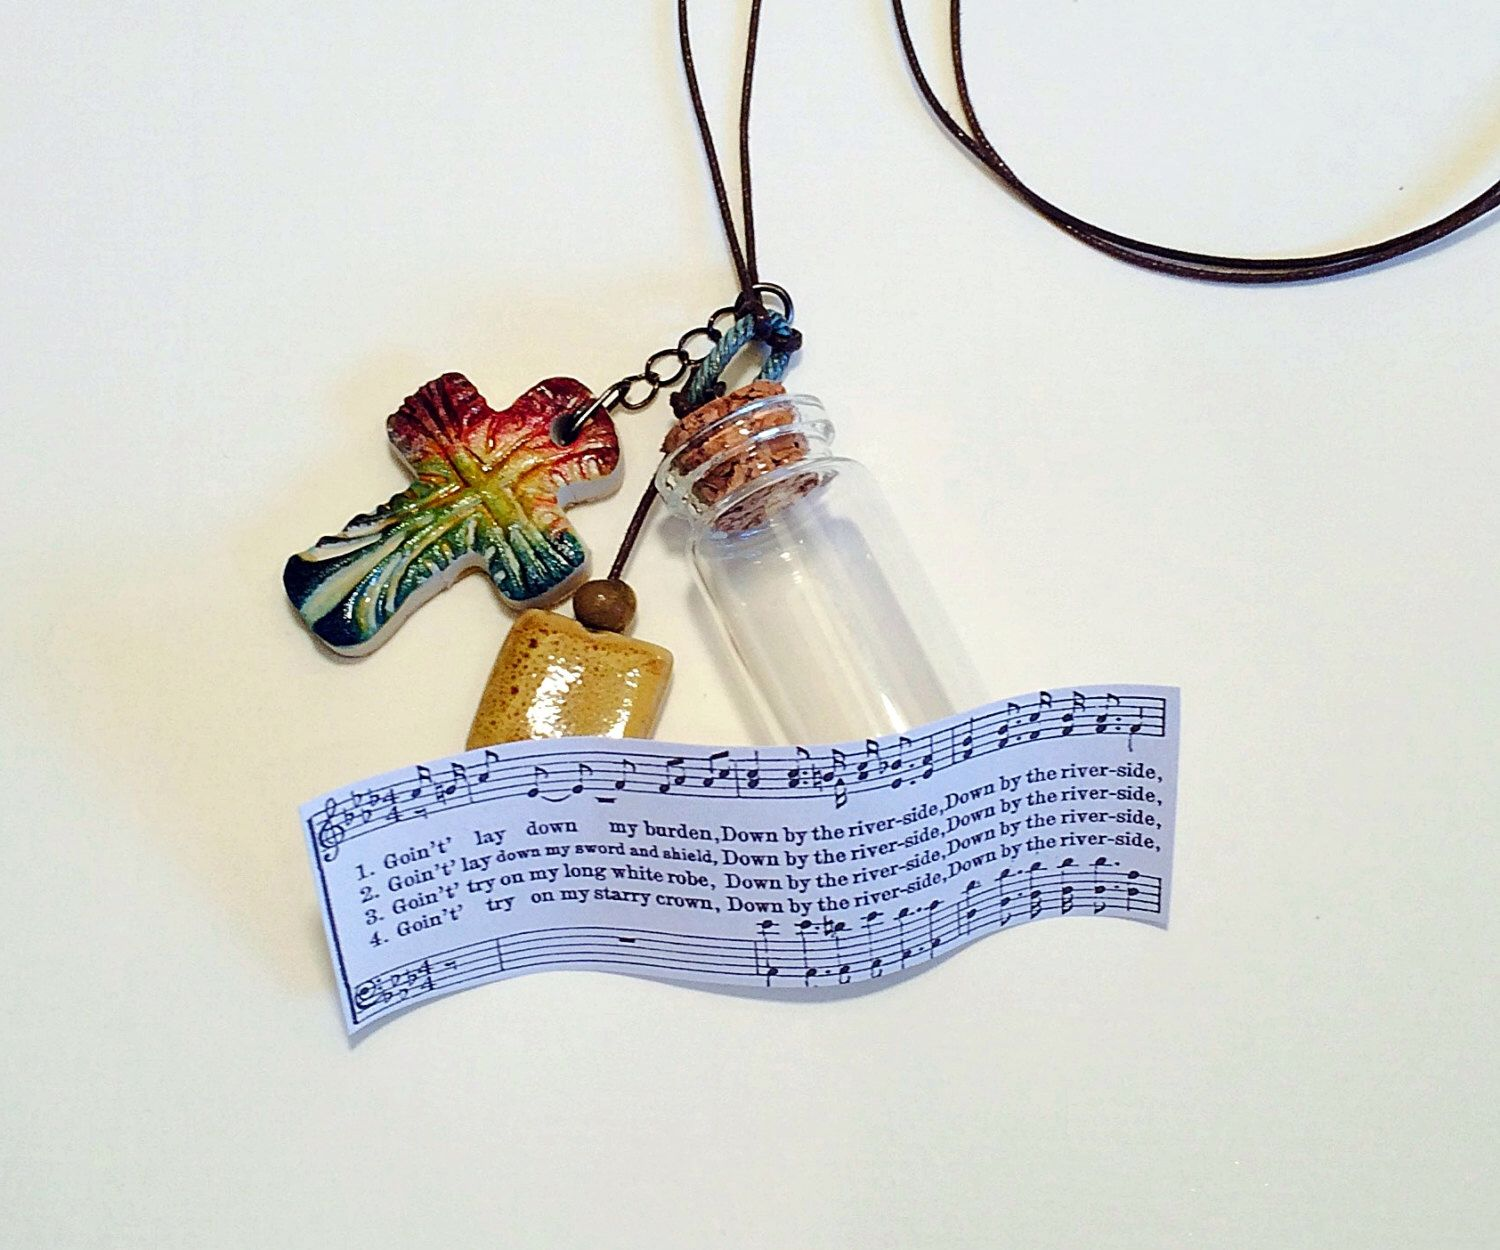 Gospel Necklace, Down By The River side, Spiritual, African American Hymn, Rustic Boho Colorful, Baptism, Unique Cross, Christian Jewelry by GospelHymns on Etsy https://www.etsy.com/listing/240158026/gospel-necklace-down-by-the-river-side